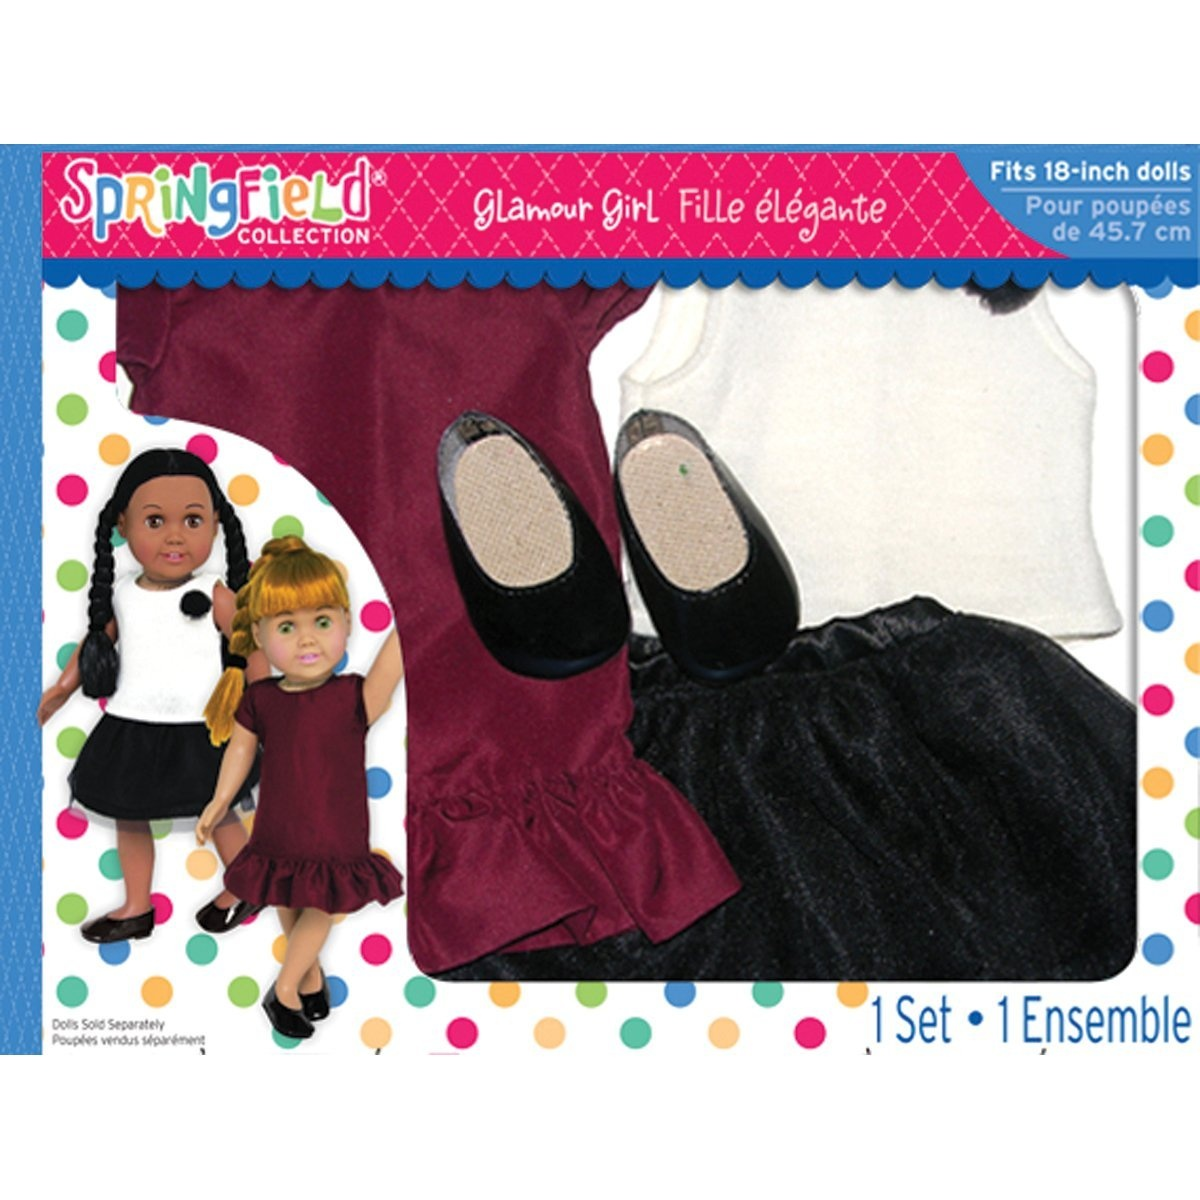 Fibre craft springfield collection glamour girl set for Fibre craft 18 inch doll